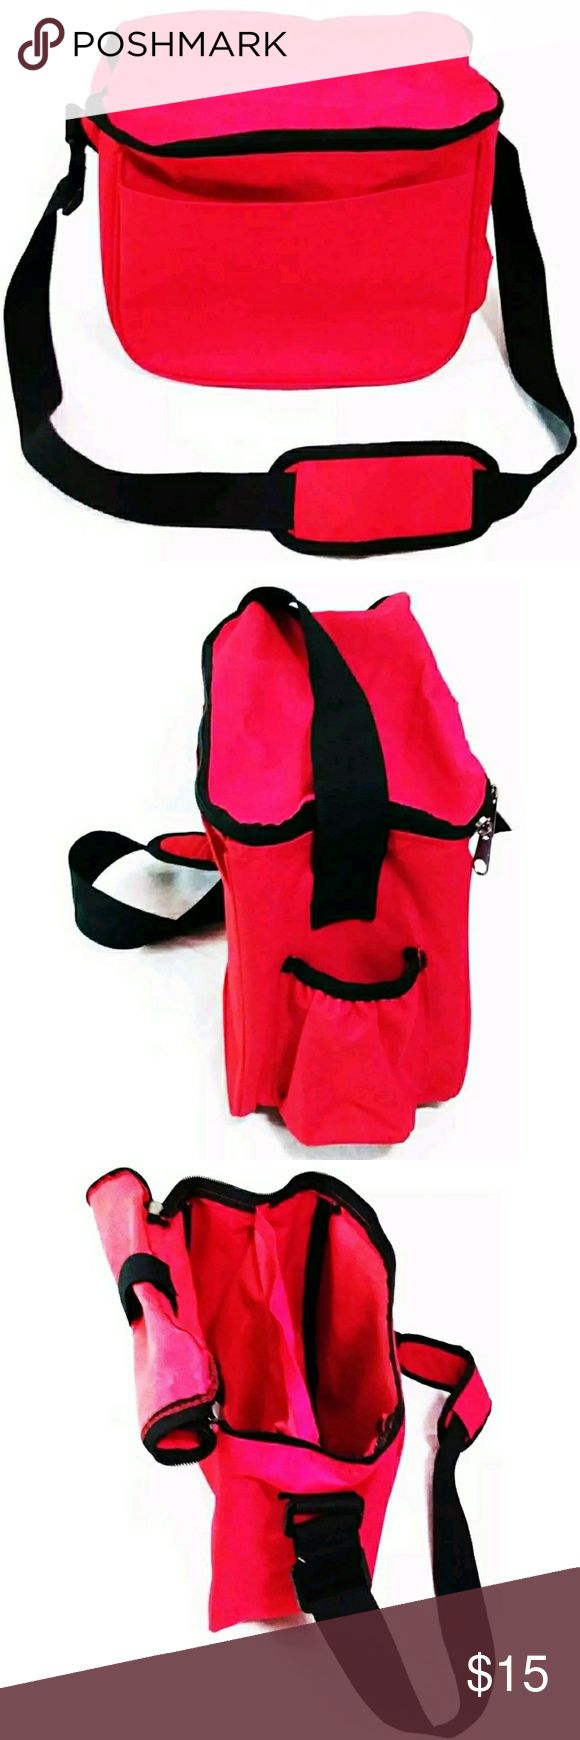 Disc Golf Bag Red Disc Golf Weekender Bag. Lightweight and Easy To Carry Disc Golf Bag with Space For Up To 8 Disc. Front Compartment Allow You To Carry Extras. Adjustable Shoulder Strap. Gently Used, No Rips, No Tears, No Discoloration. Smoke Free Environment. Bags